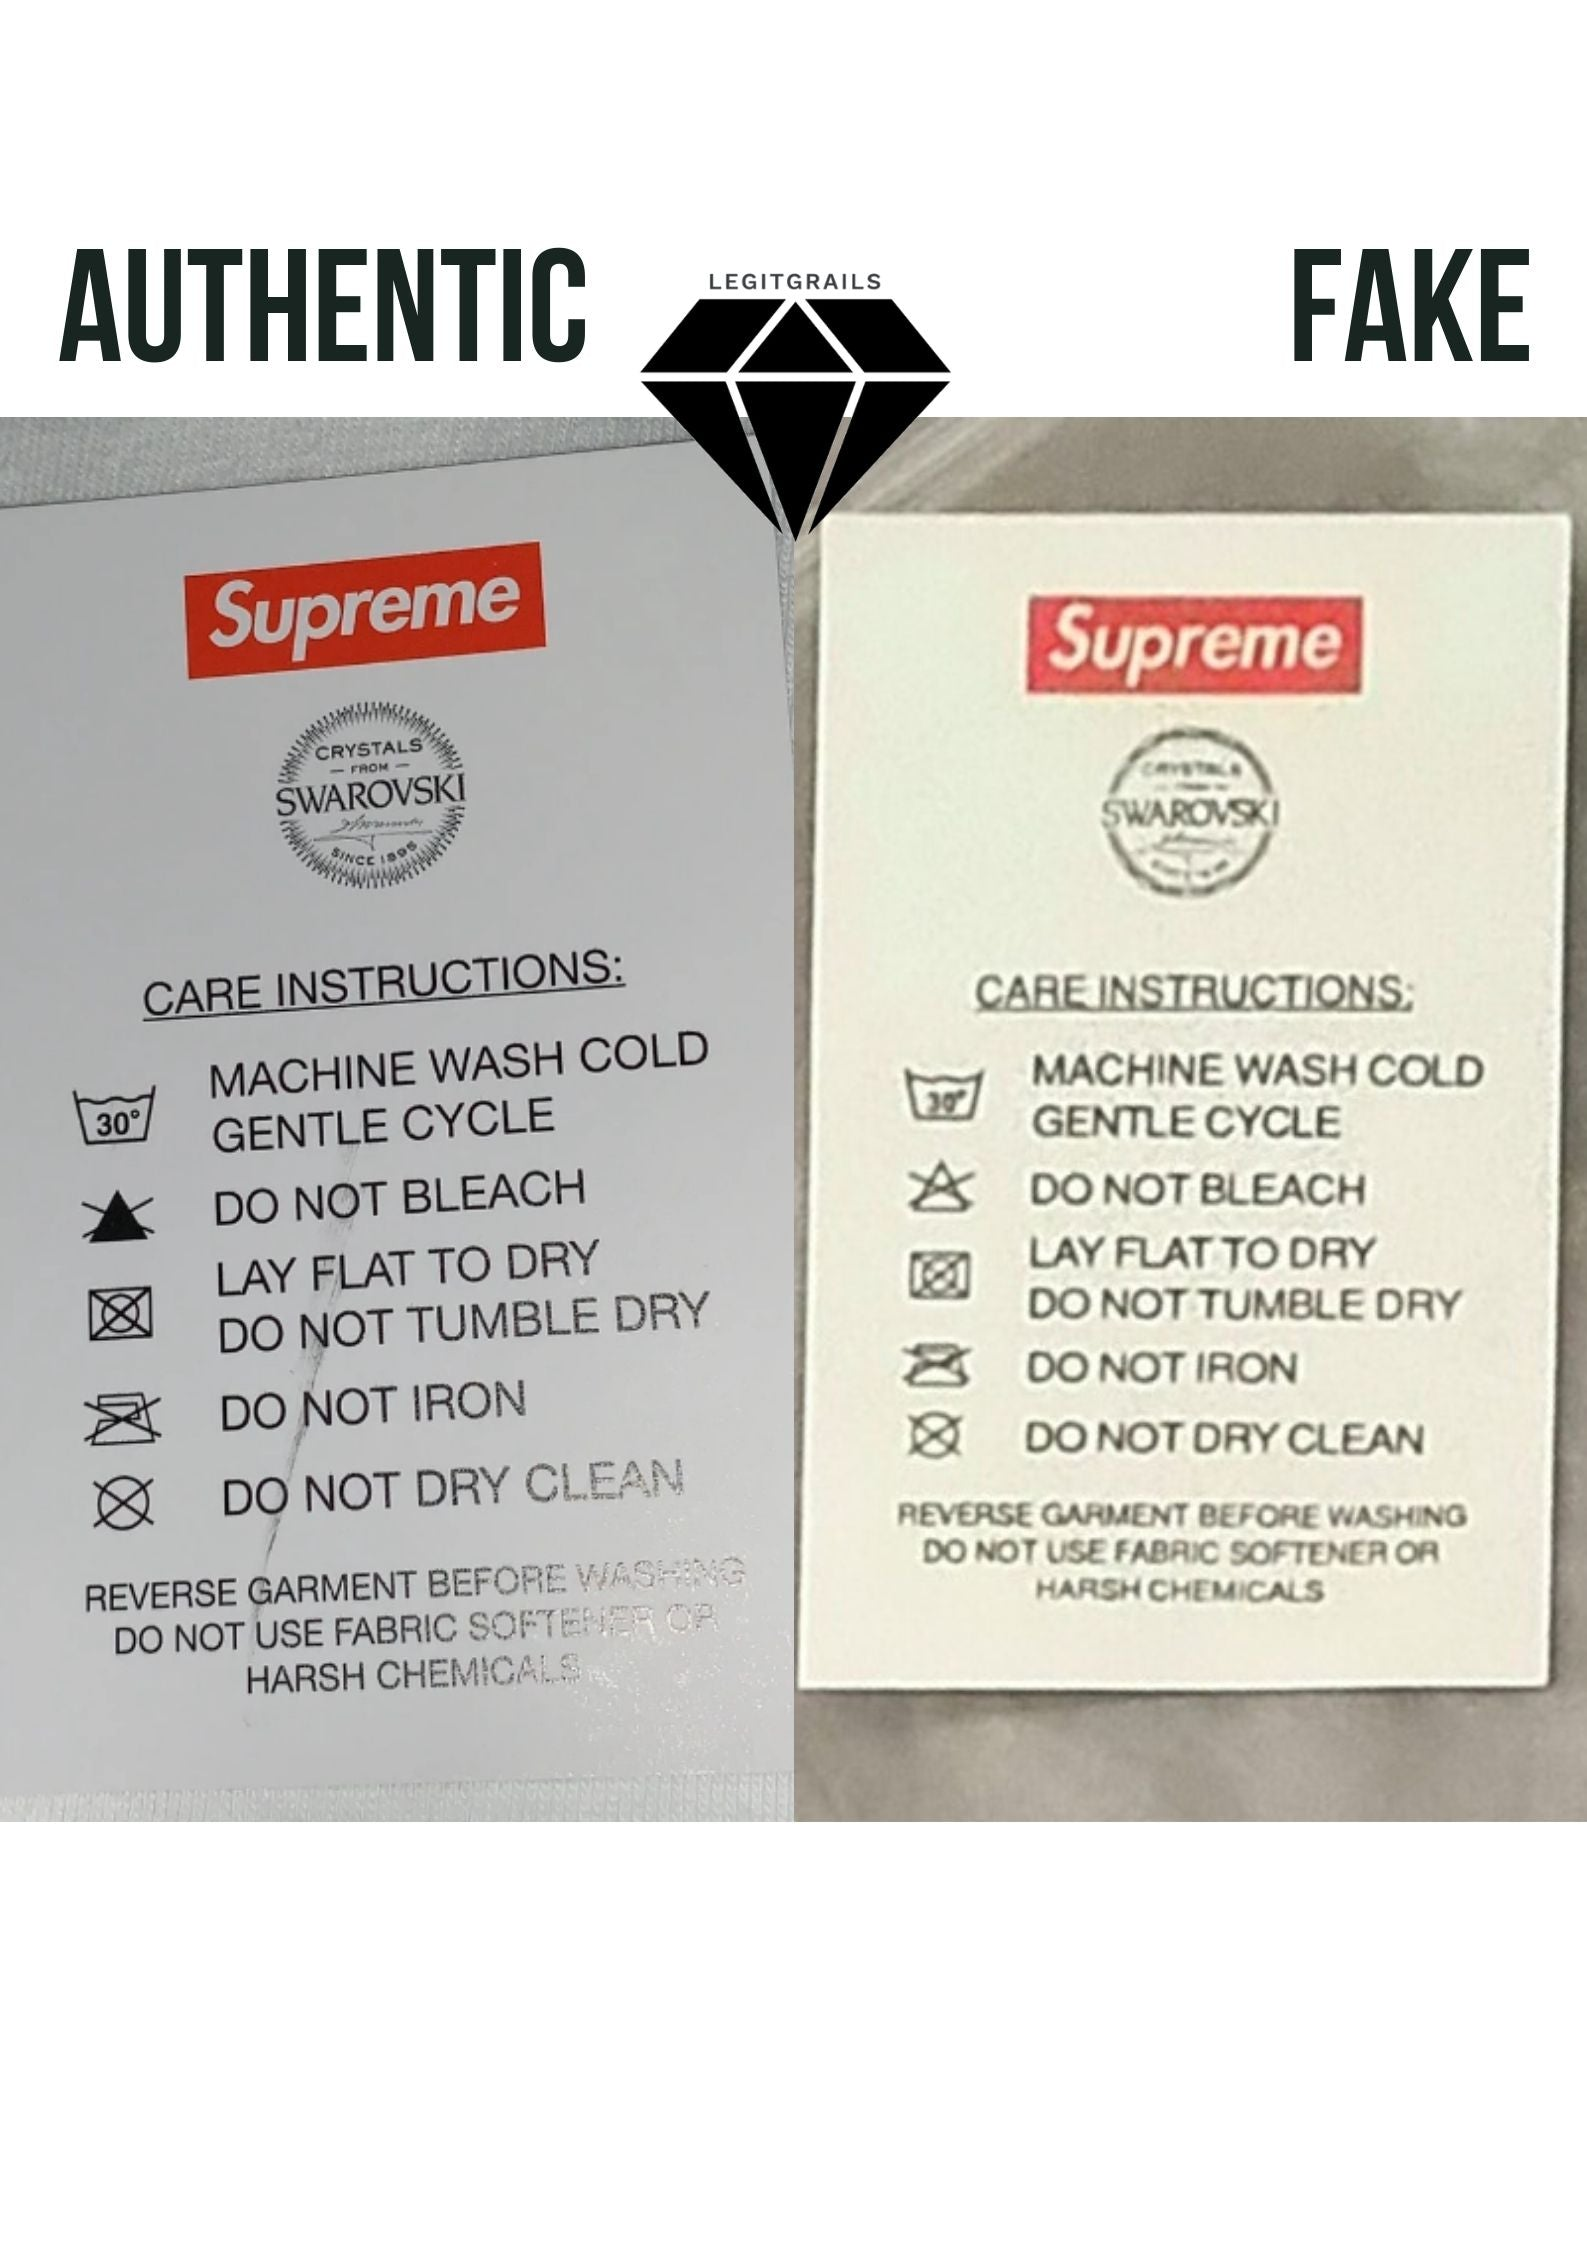 Supreme Swarovski Care Instructions T Shirt Real vs Fake | Supreme Legit Check